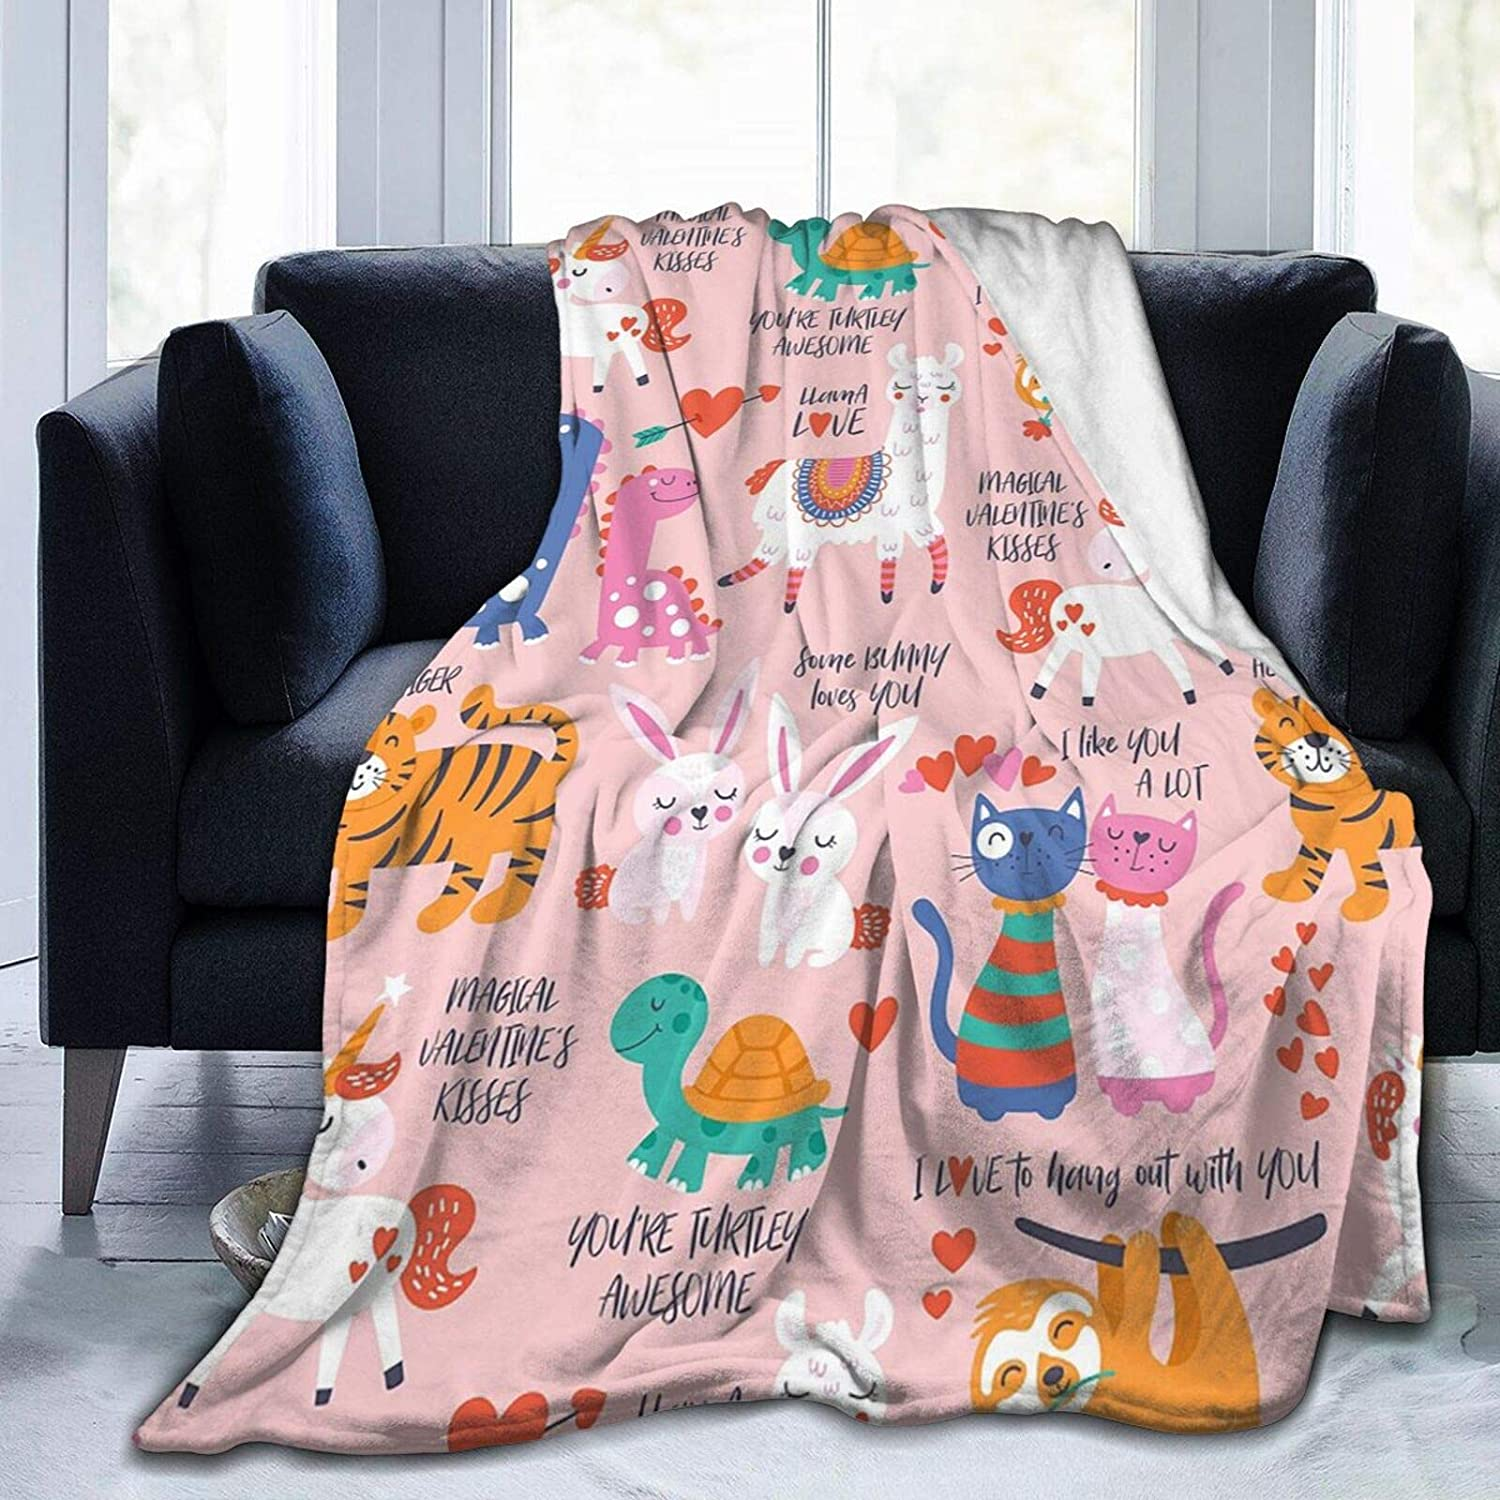 AuHomea Flannel Blanket Valentine's Fixed All items in the store price for sale Day Cute Animals with Lightw